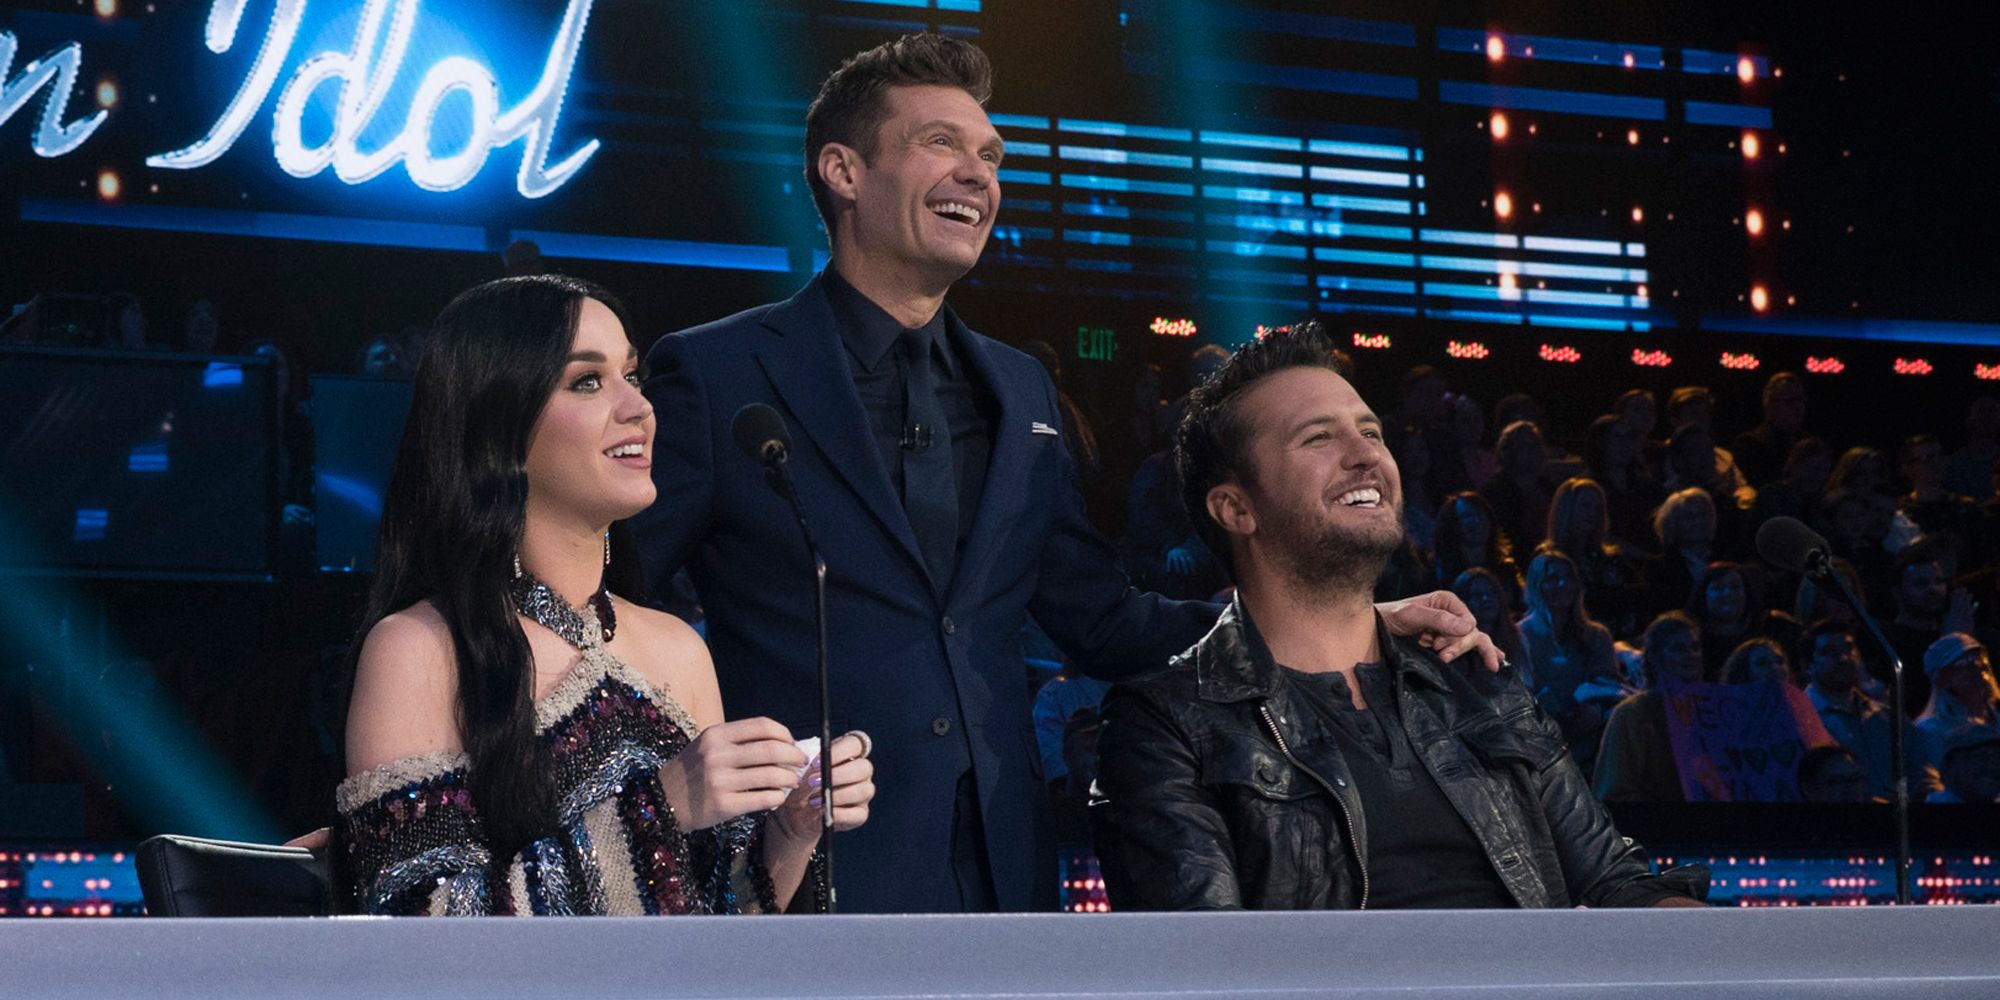 Ryan Seacrest Was Caught Creepily Hitting on Katy Perry on Live TV